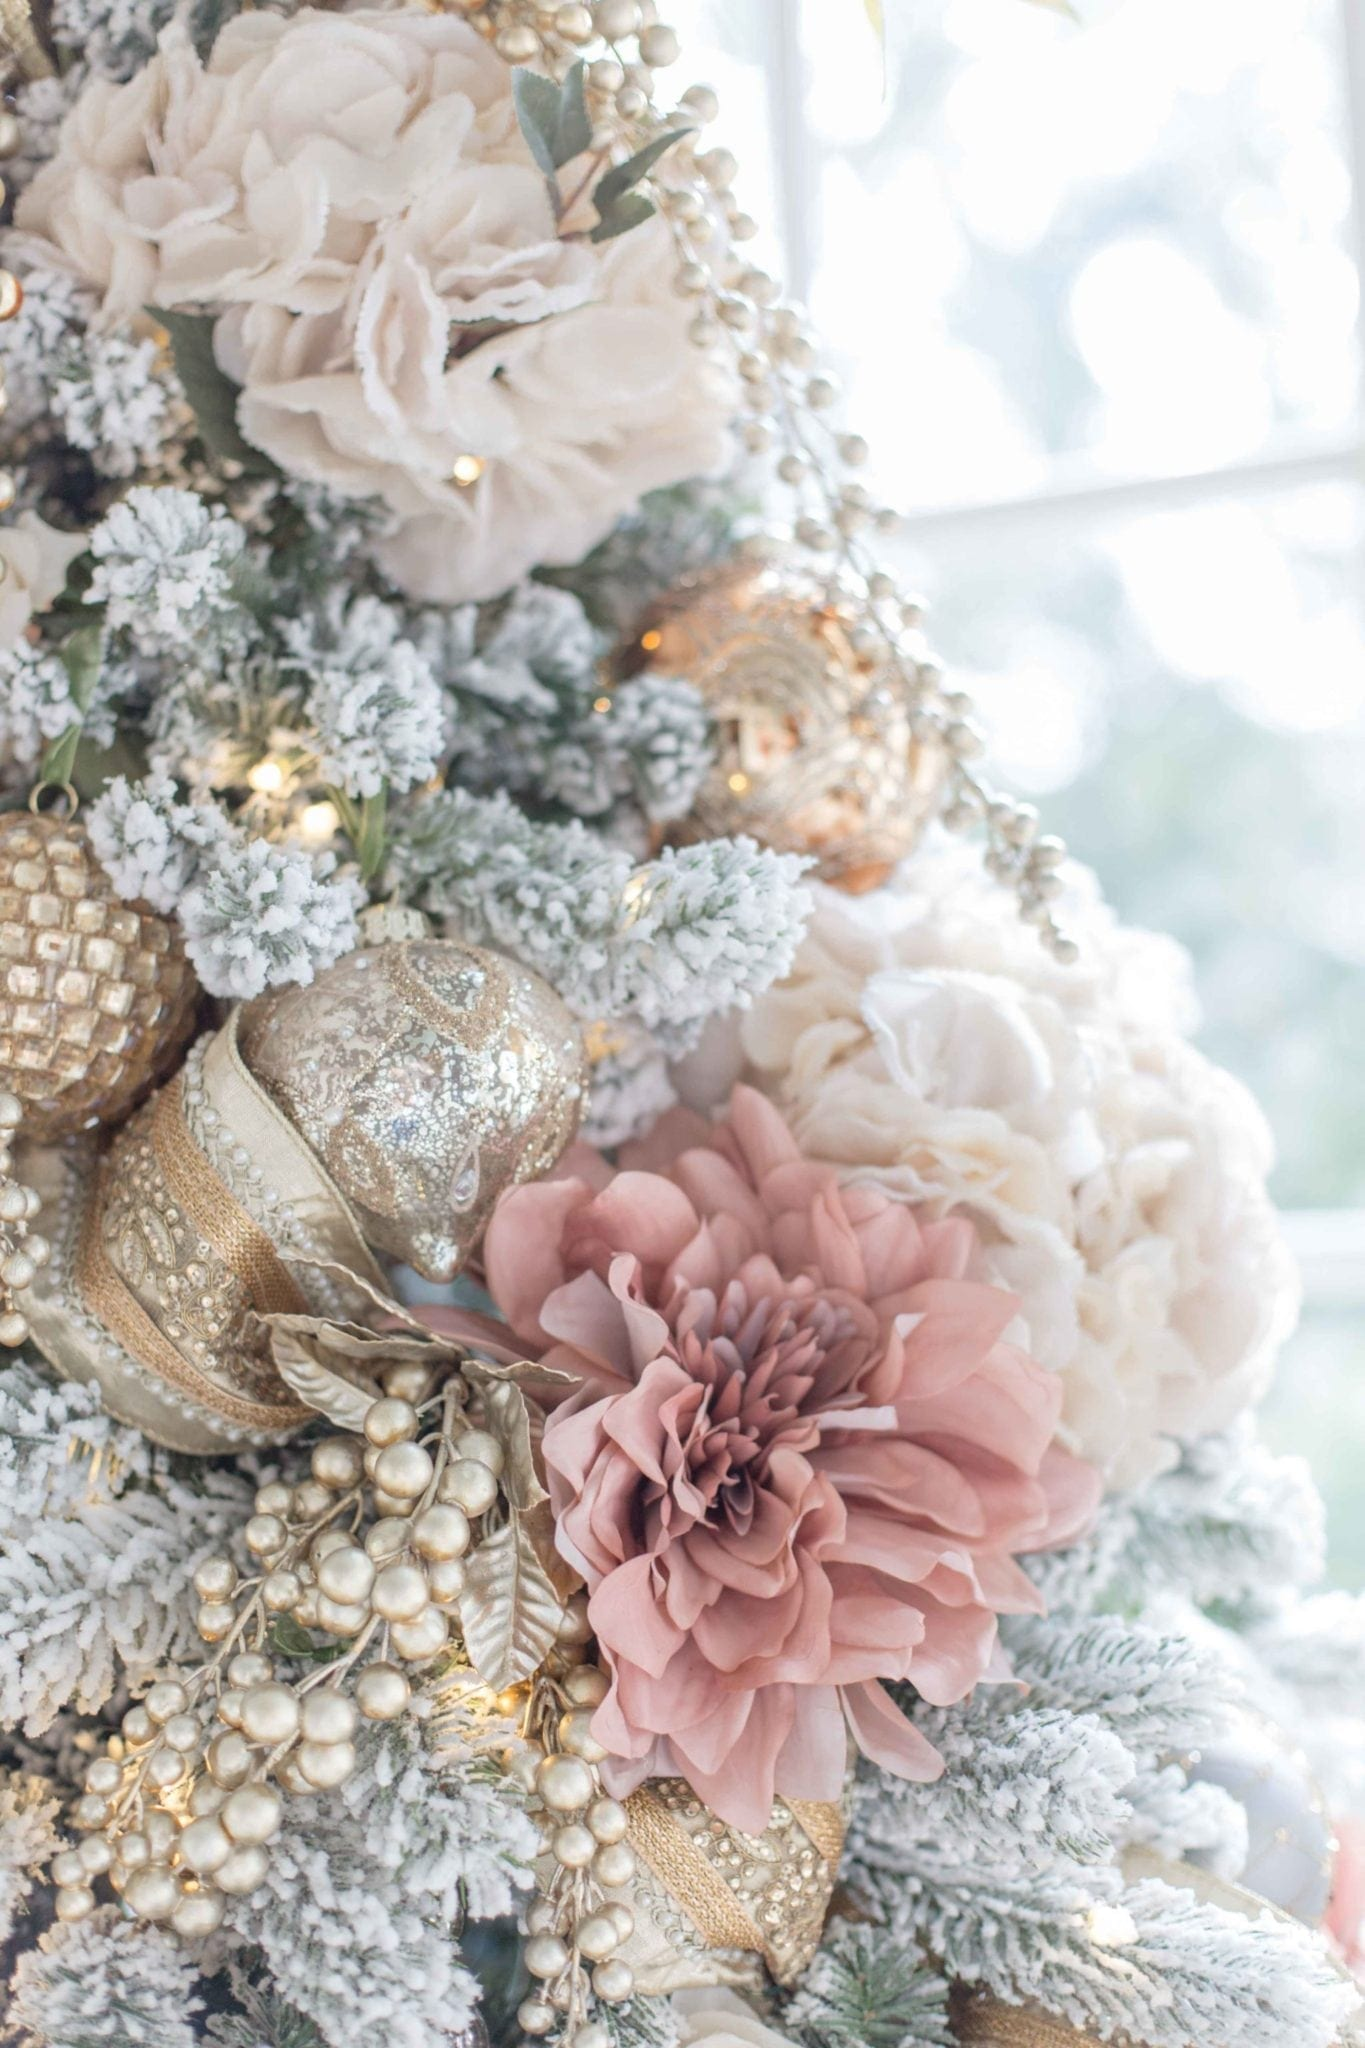 Faux flowers on a Christmas tree. Use fake flowers to add a new element to your holiday tree along with gorgeous ornaments!